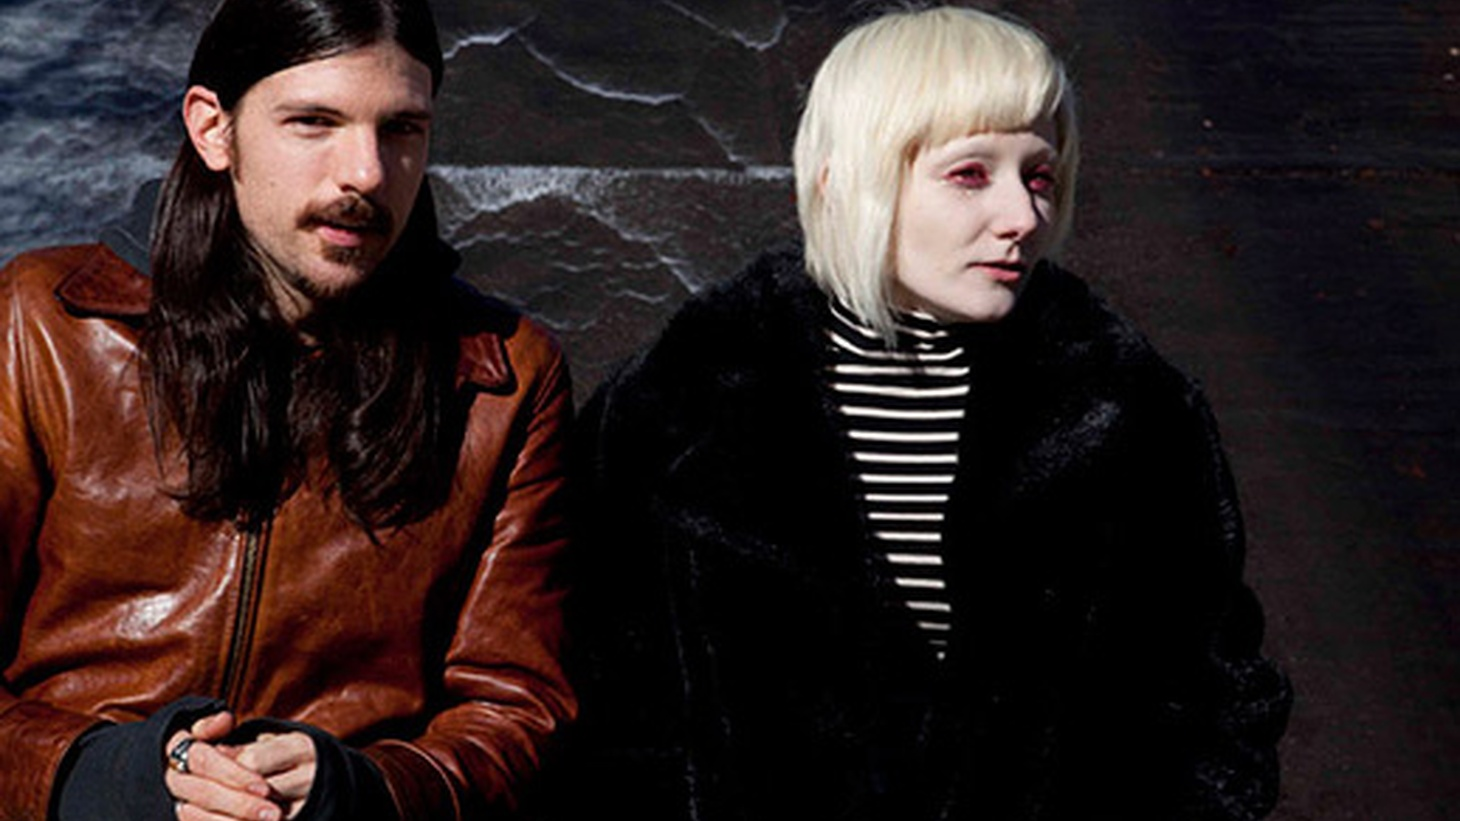 Seth Avett of The Avett Brothers and singer Jessica Lea Mayfield join forces to celebrate the music of Elliott Smith.